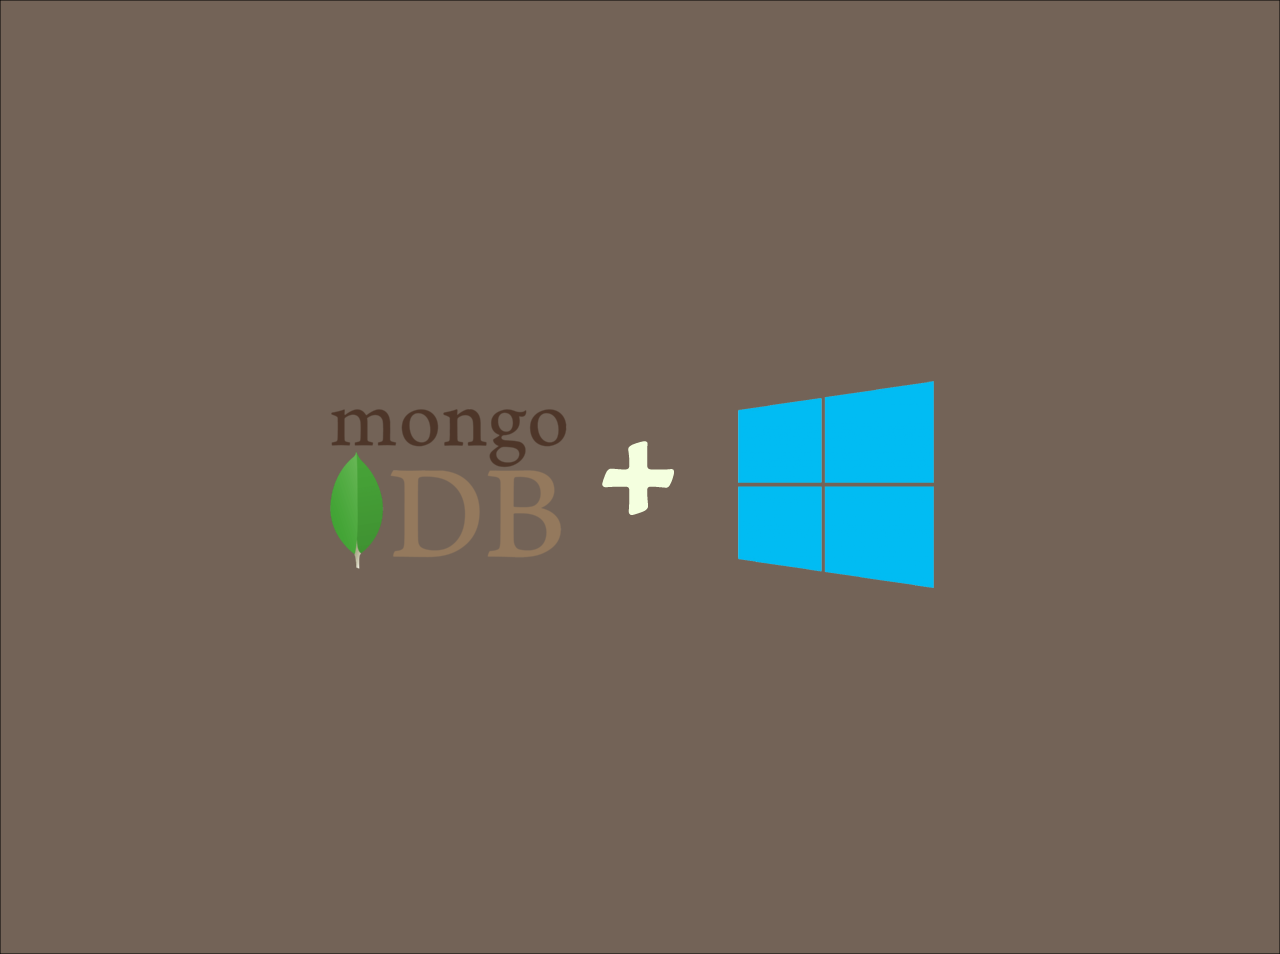 How to install and setup MongoDB on Windows